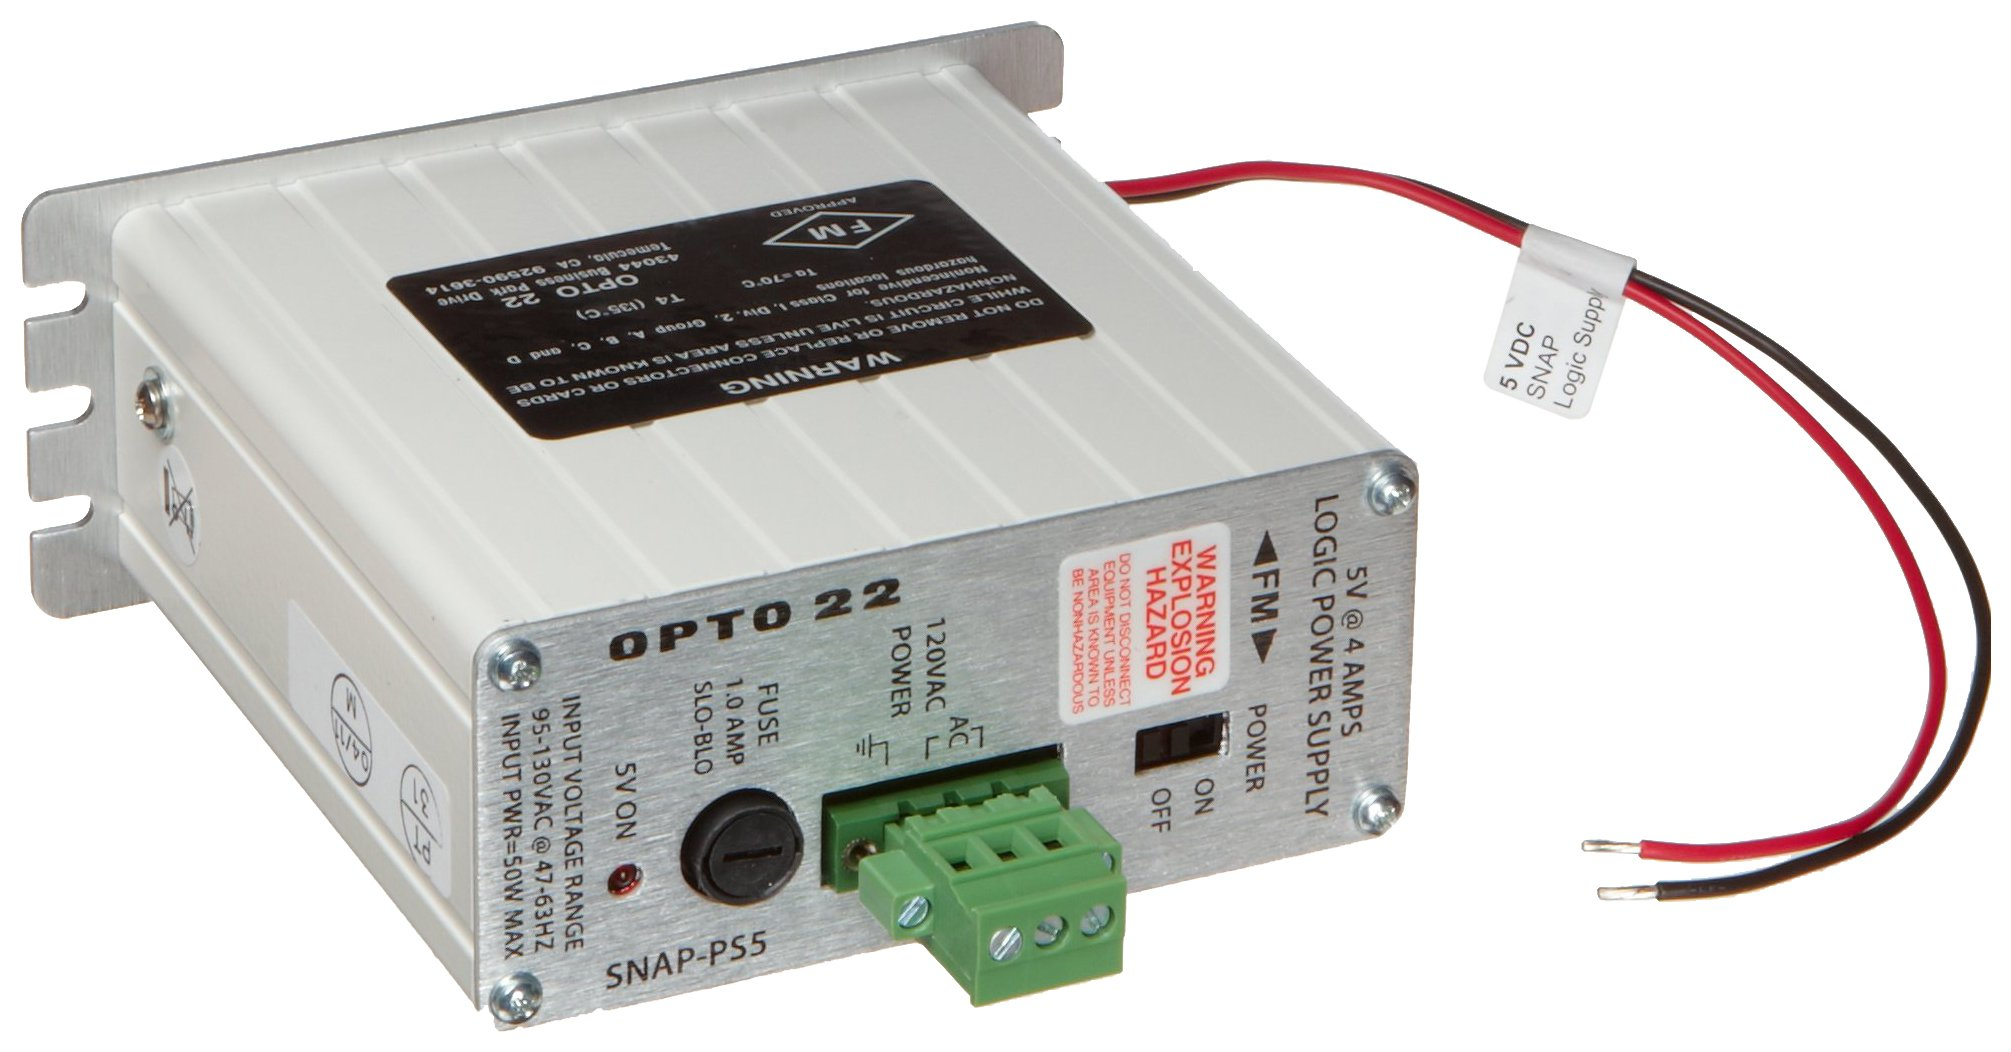 Opto 22 SNAP-PS5 - SNAP Power Supply, 120 VAC Input, 5 VDC, 4 A Output